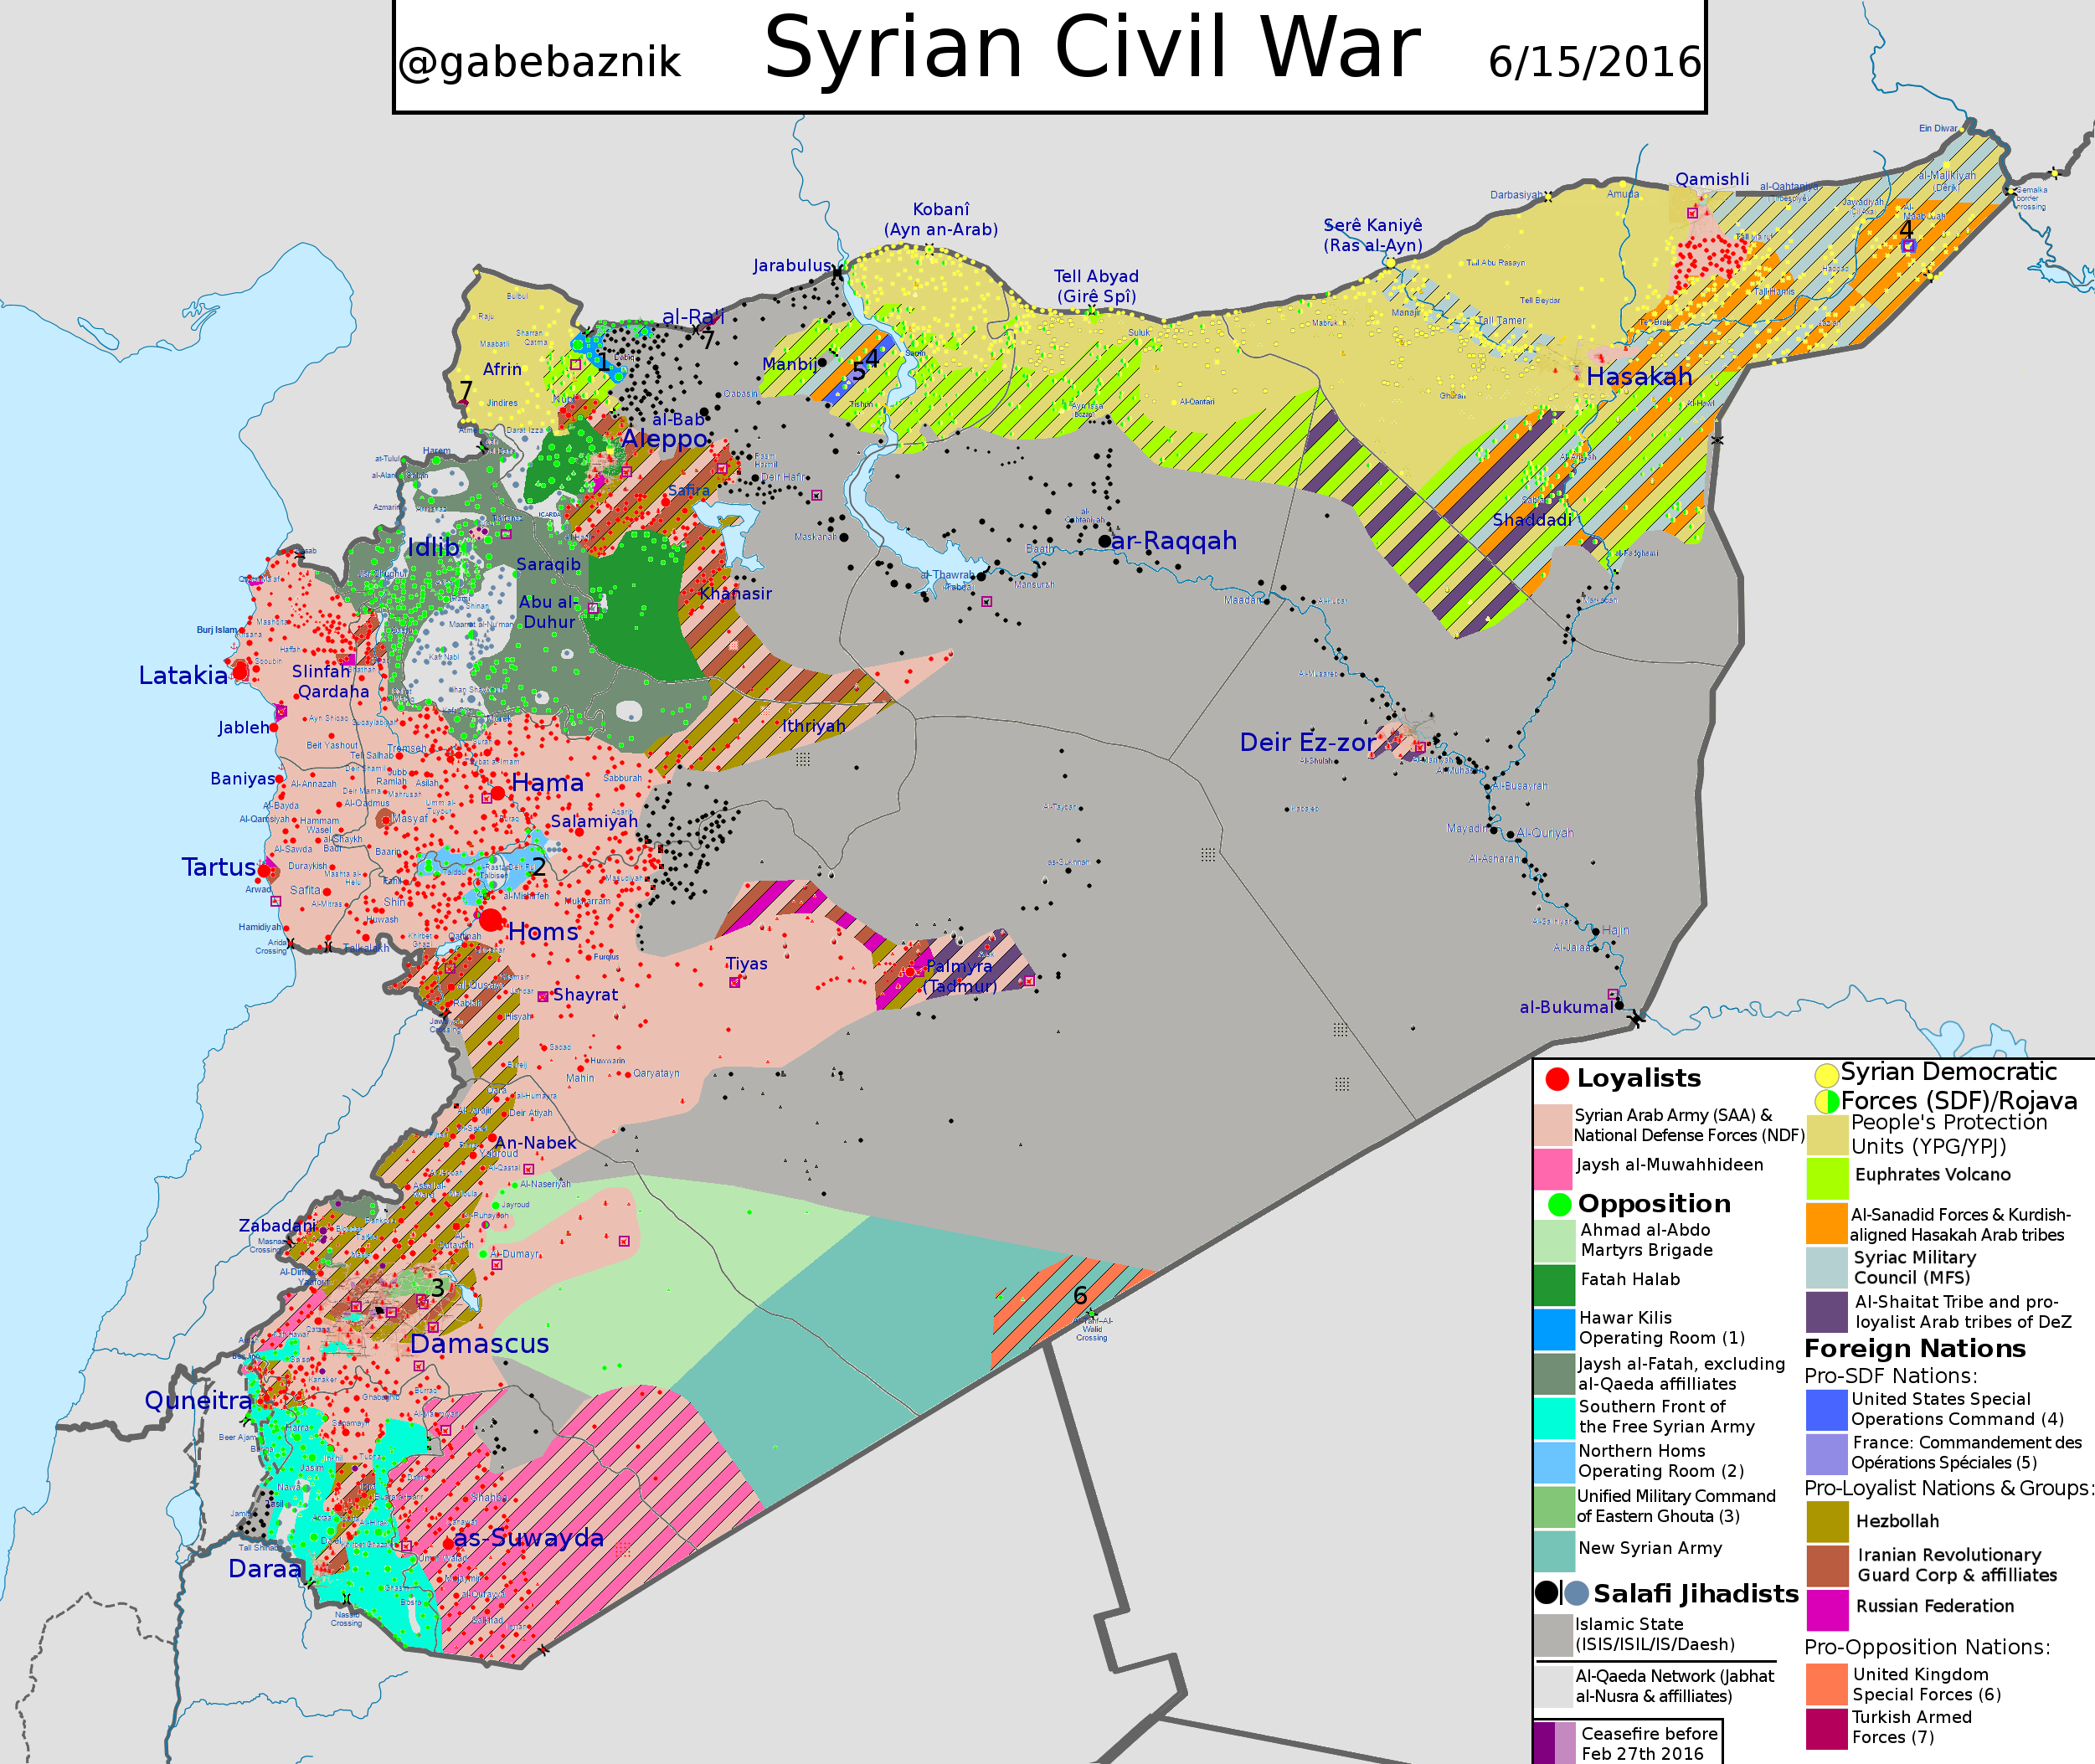 Detailed map of general situation in Syria as of June 2016 with